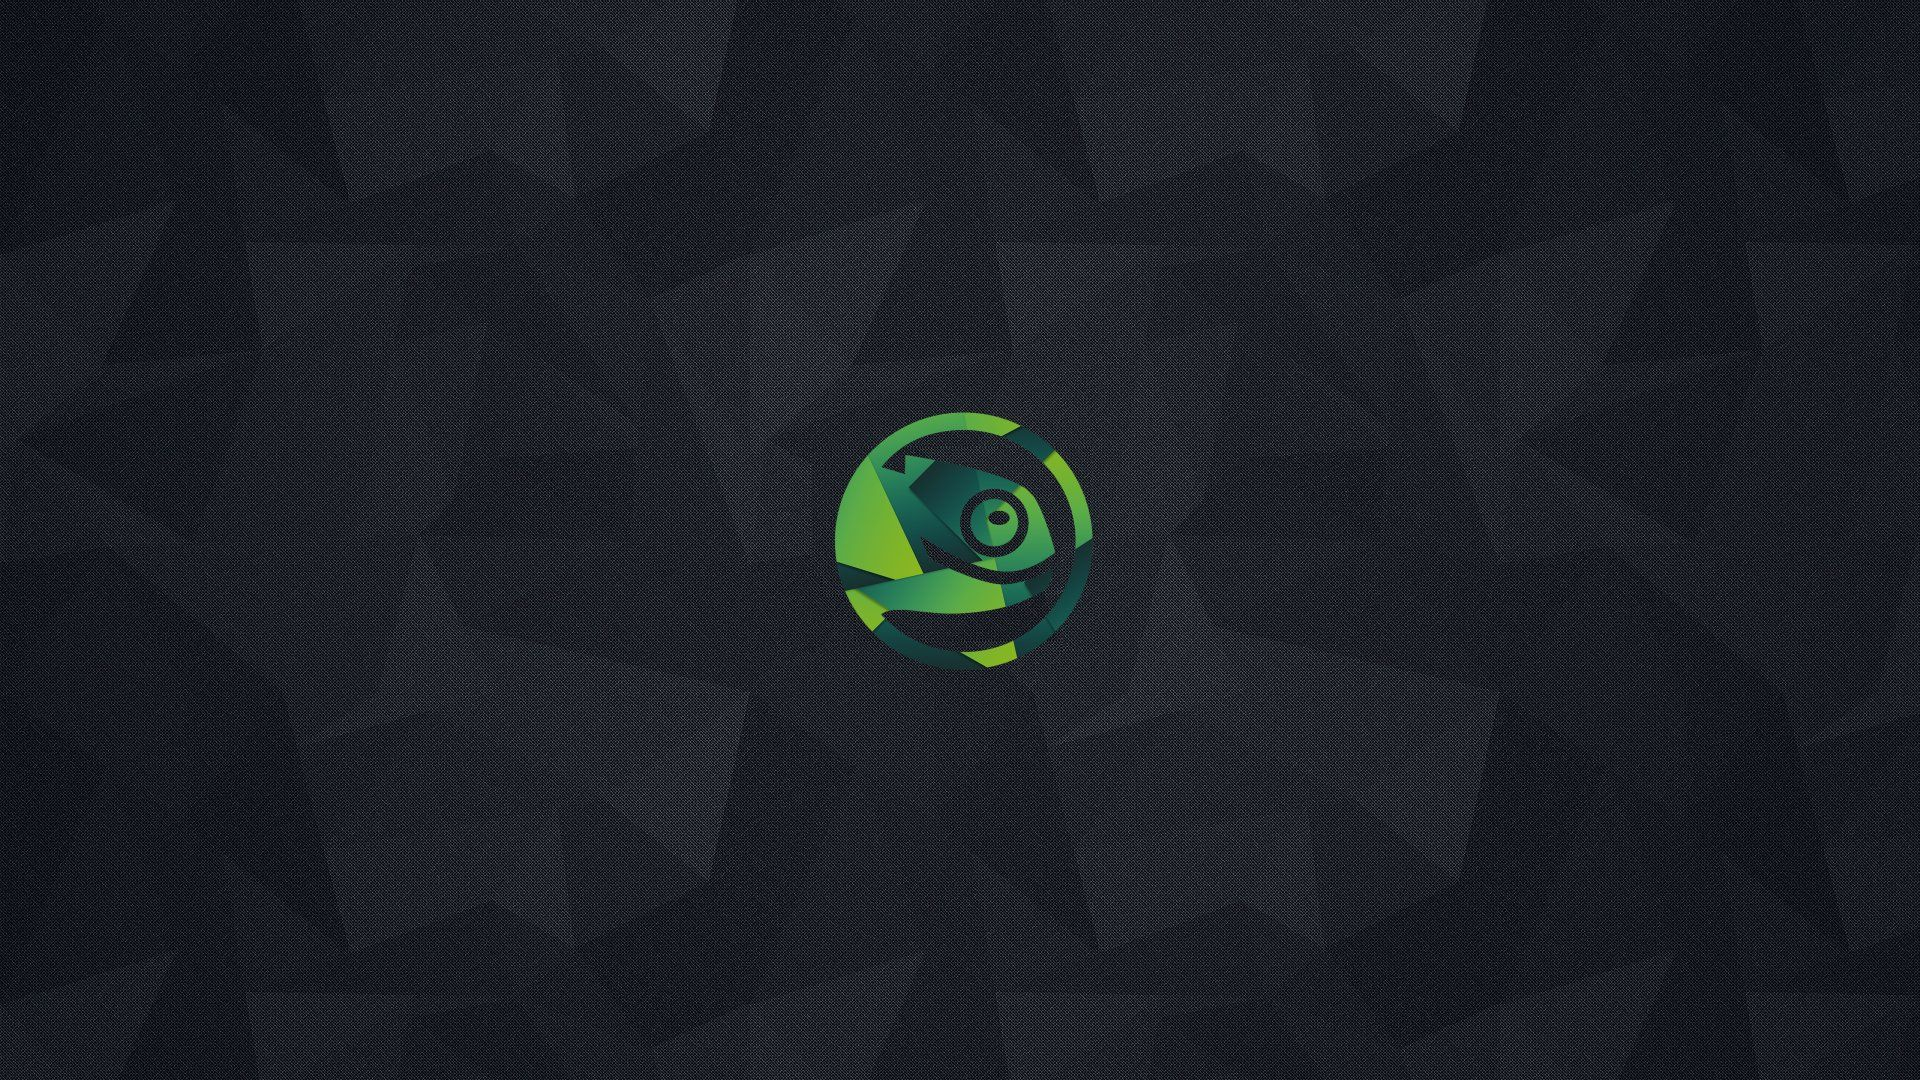 1920x1080 openSUSE wallpaper] Here's a wallpaper I made for you guys. : openSUSE